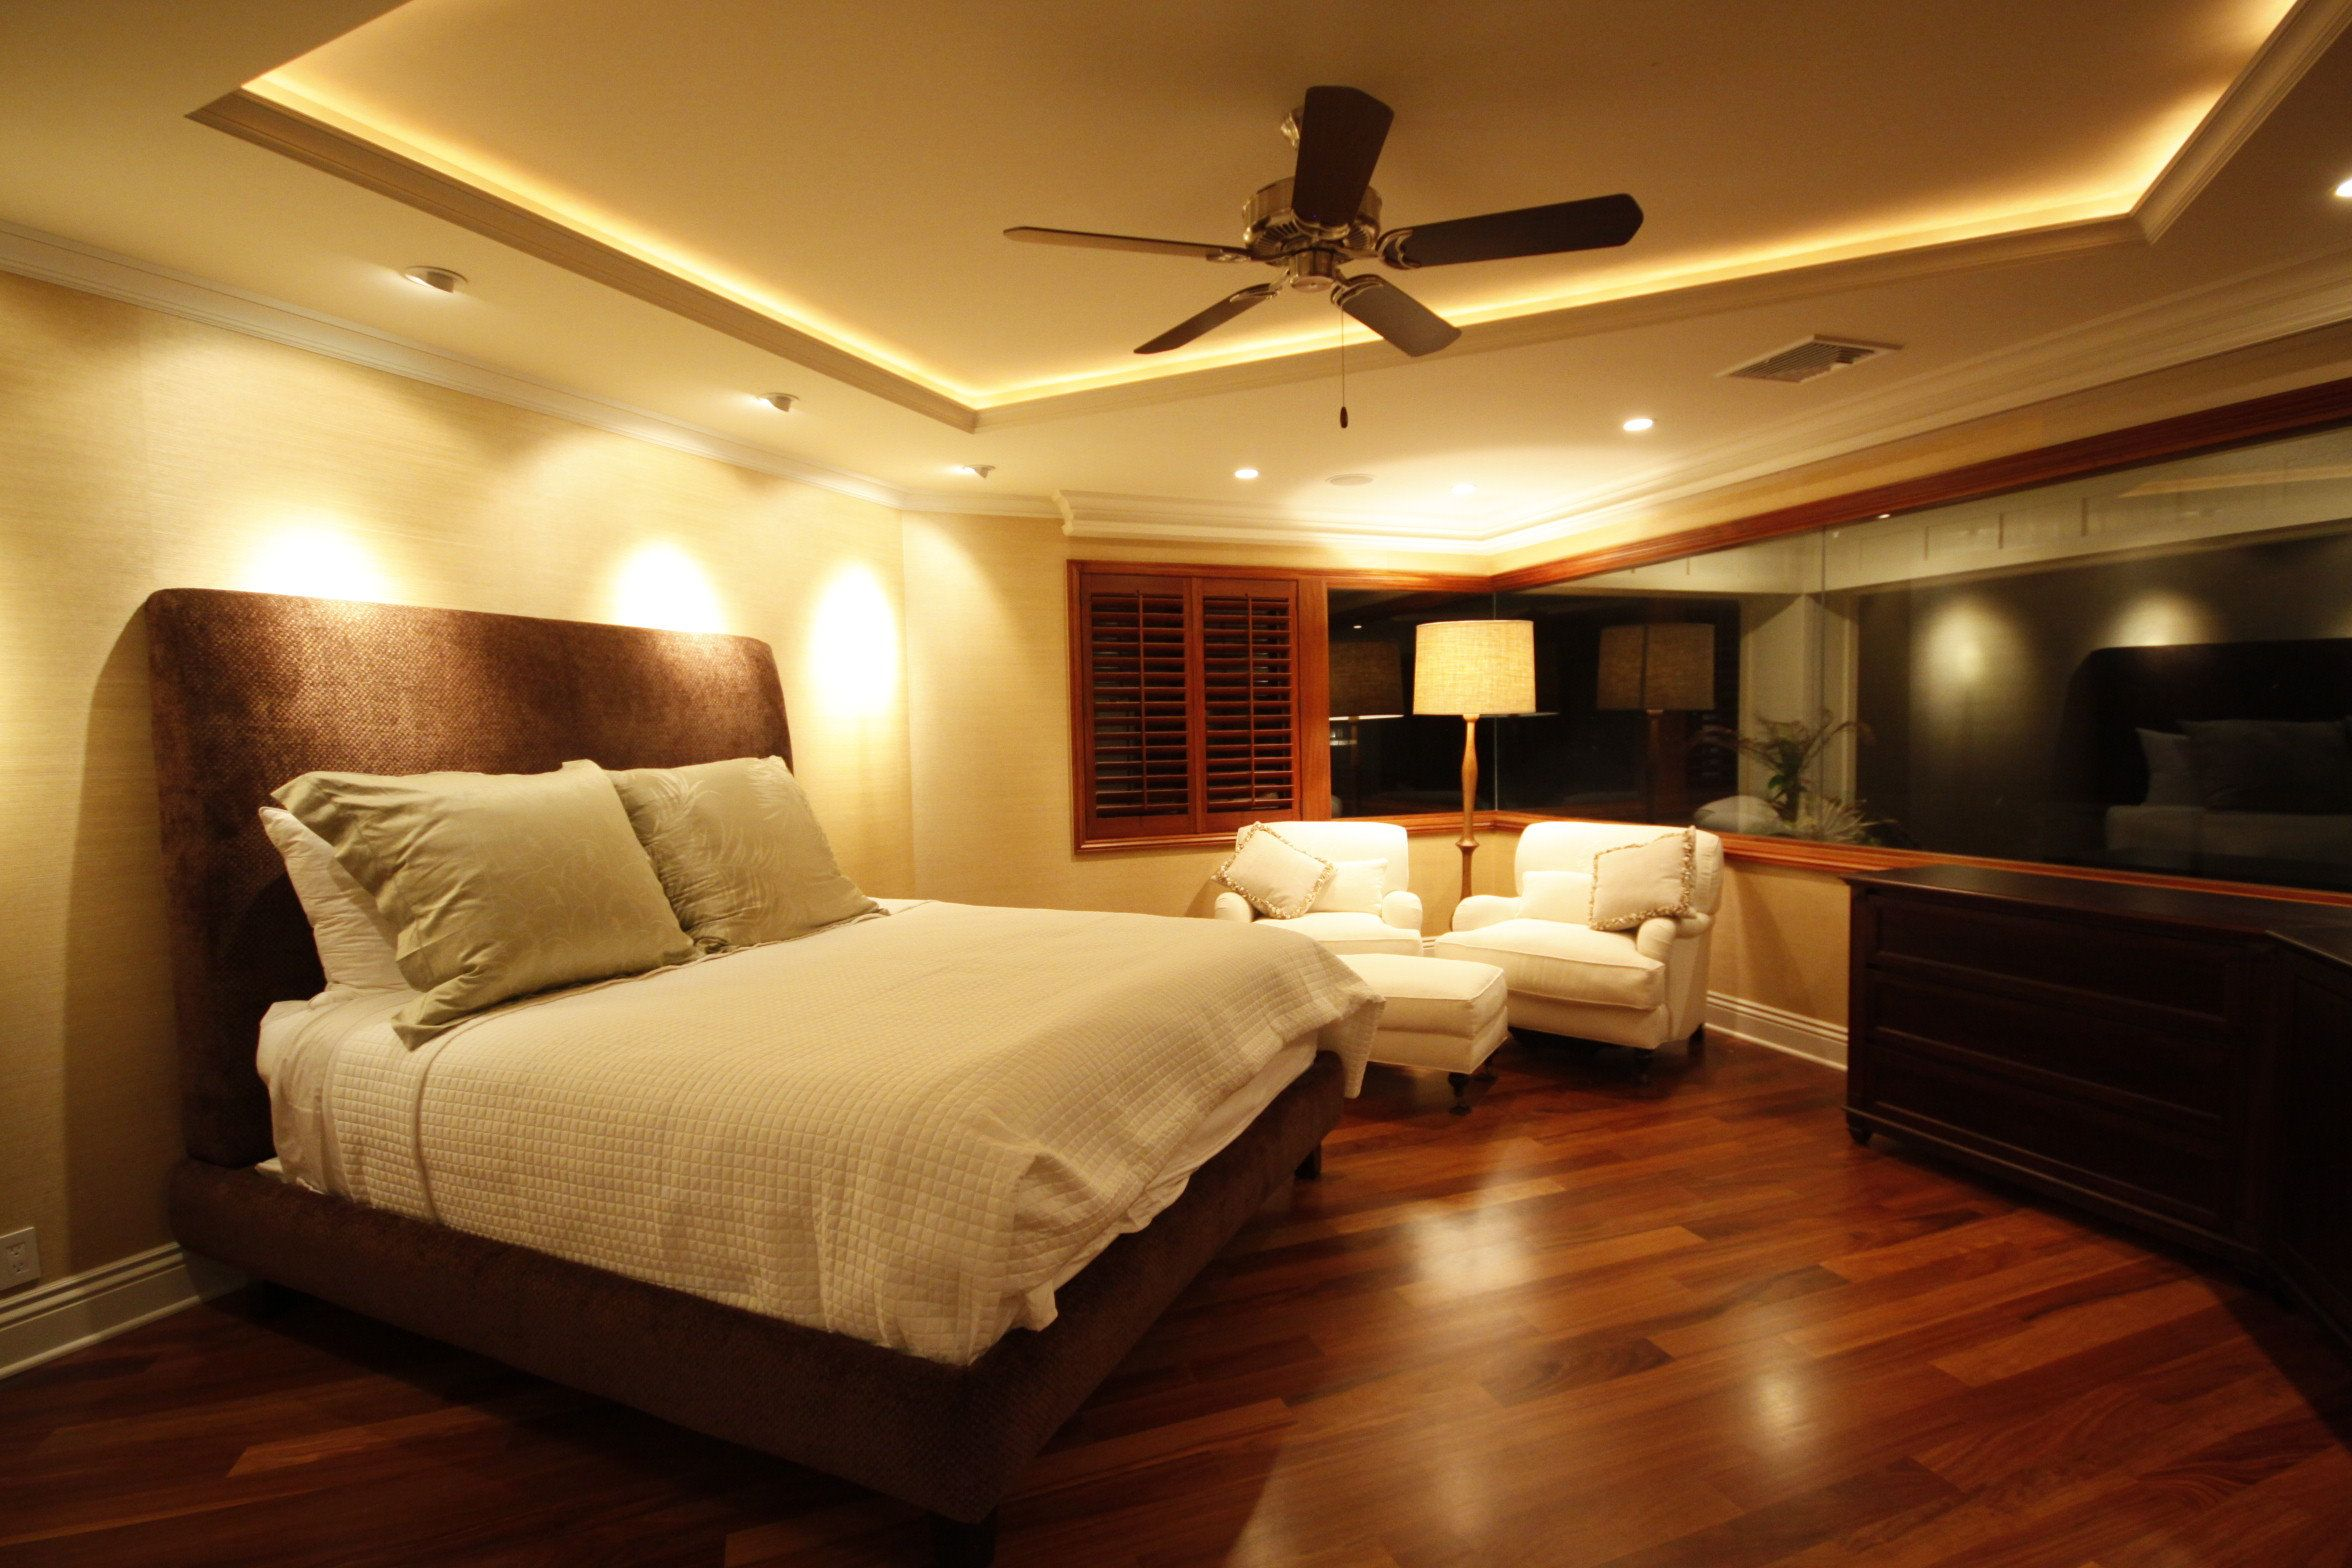 Appealing master bedroom modern decor with wooden floors for Master bed design images